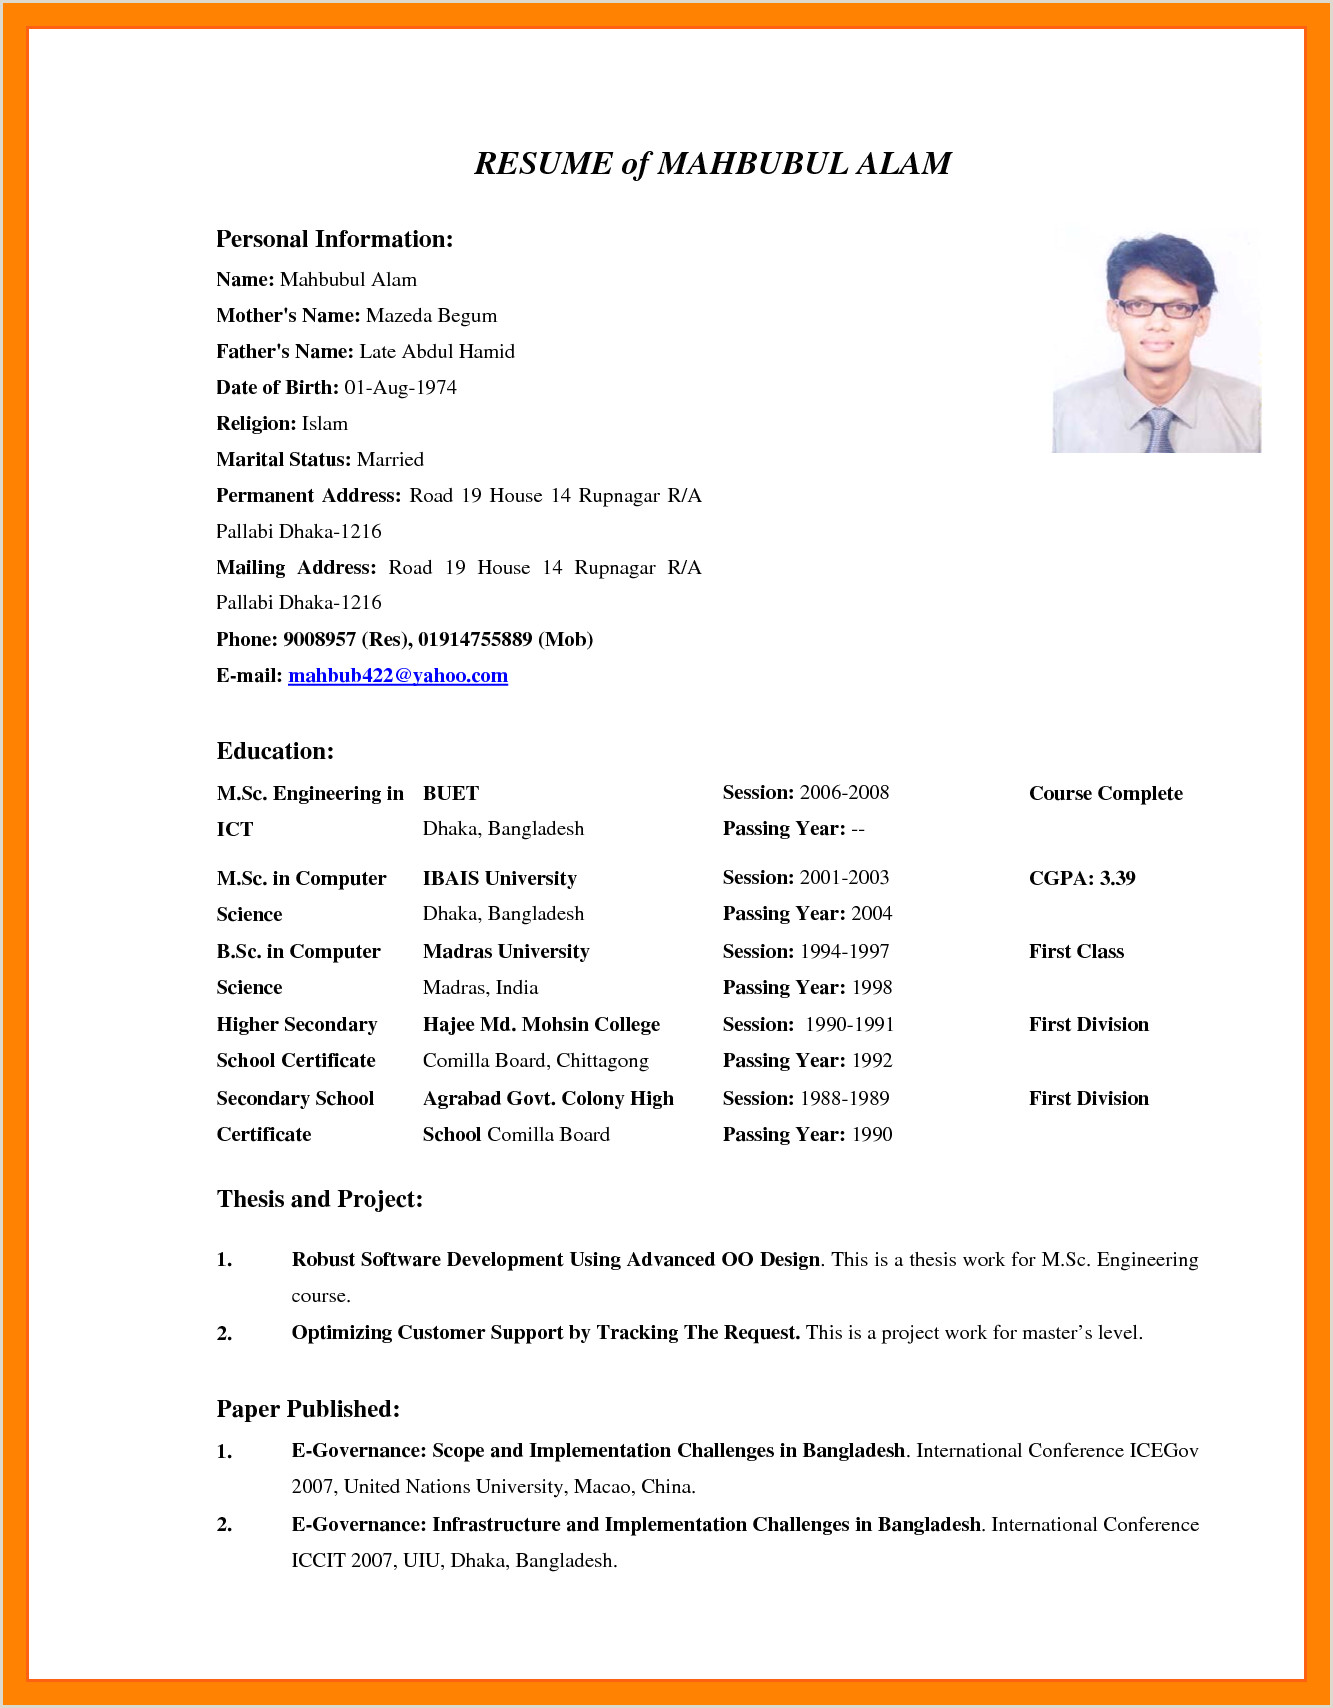 Cv format for Job In Bangladesh Pdf by Congress Bangladesh Job Cv format Pdf